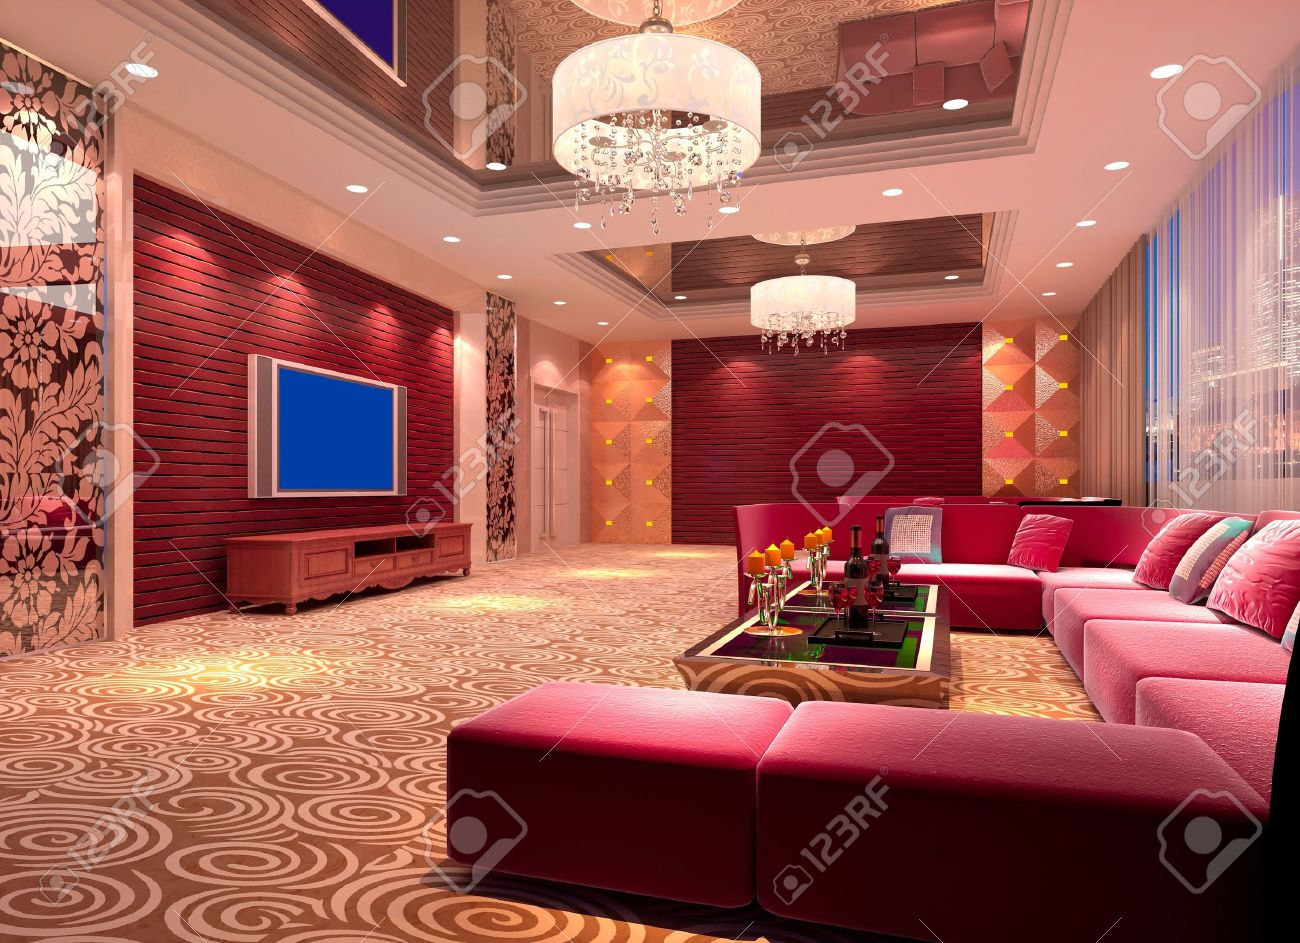 Modern Design Club Of Room, Hall. 3D Render Stock Photo, Picture And ...